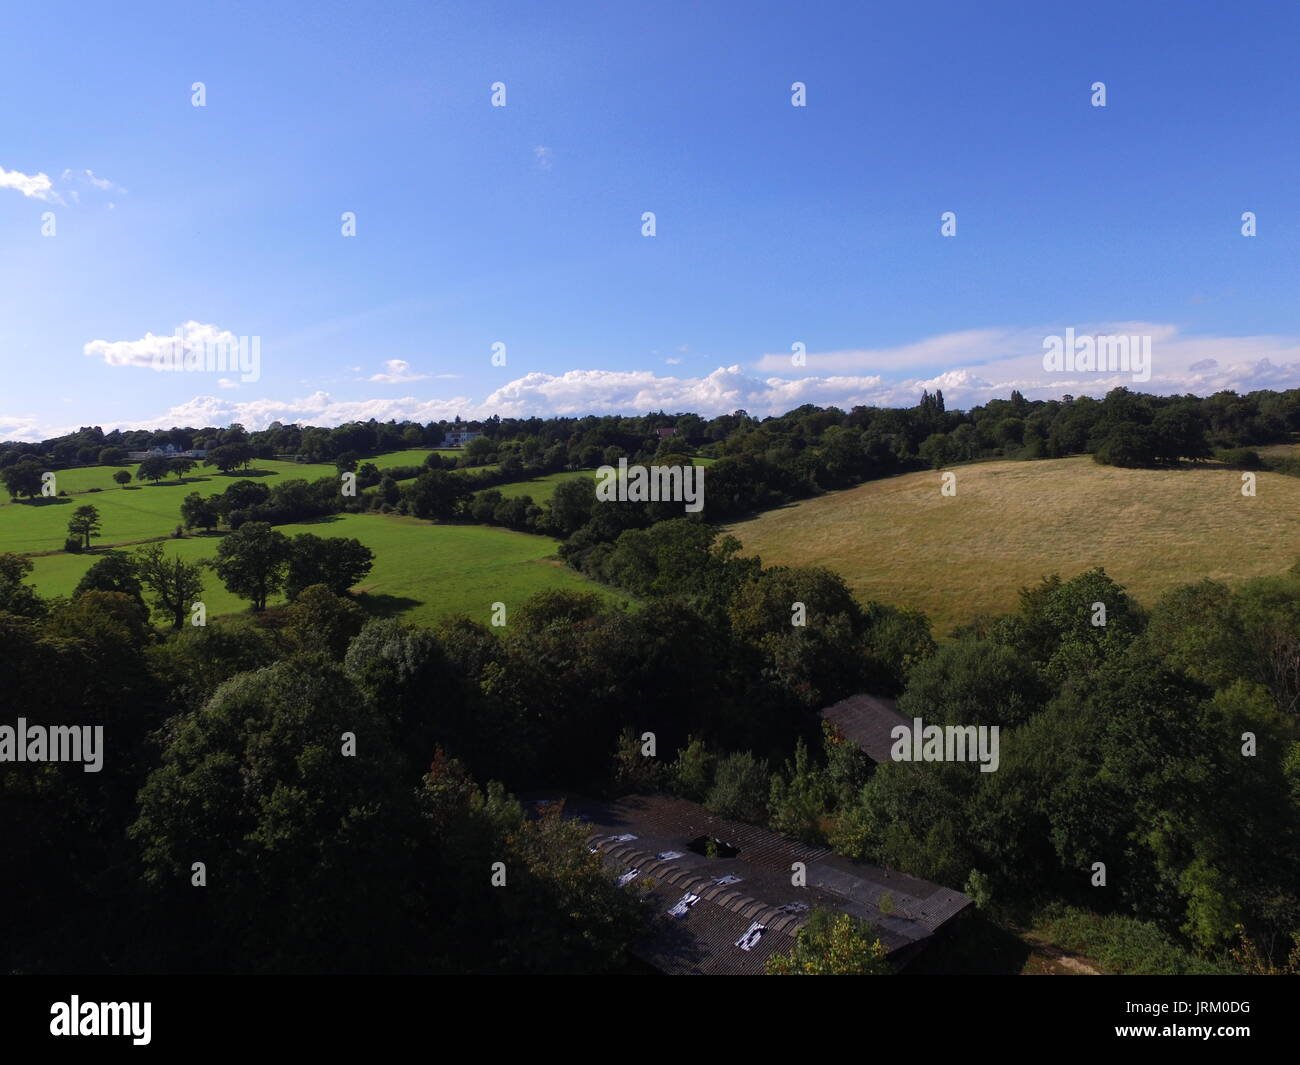 Aerial Photography - British Countryside - Stock Image